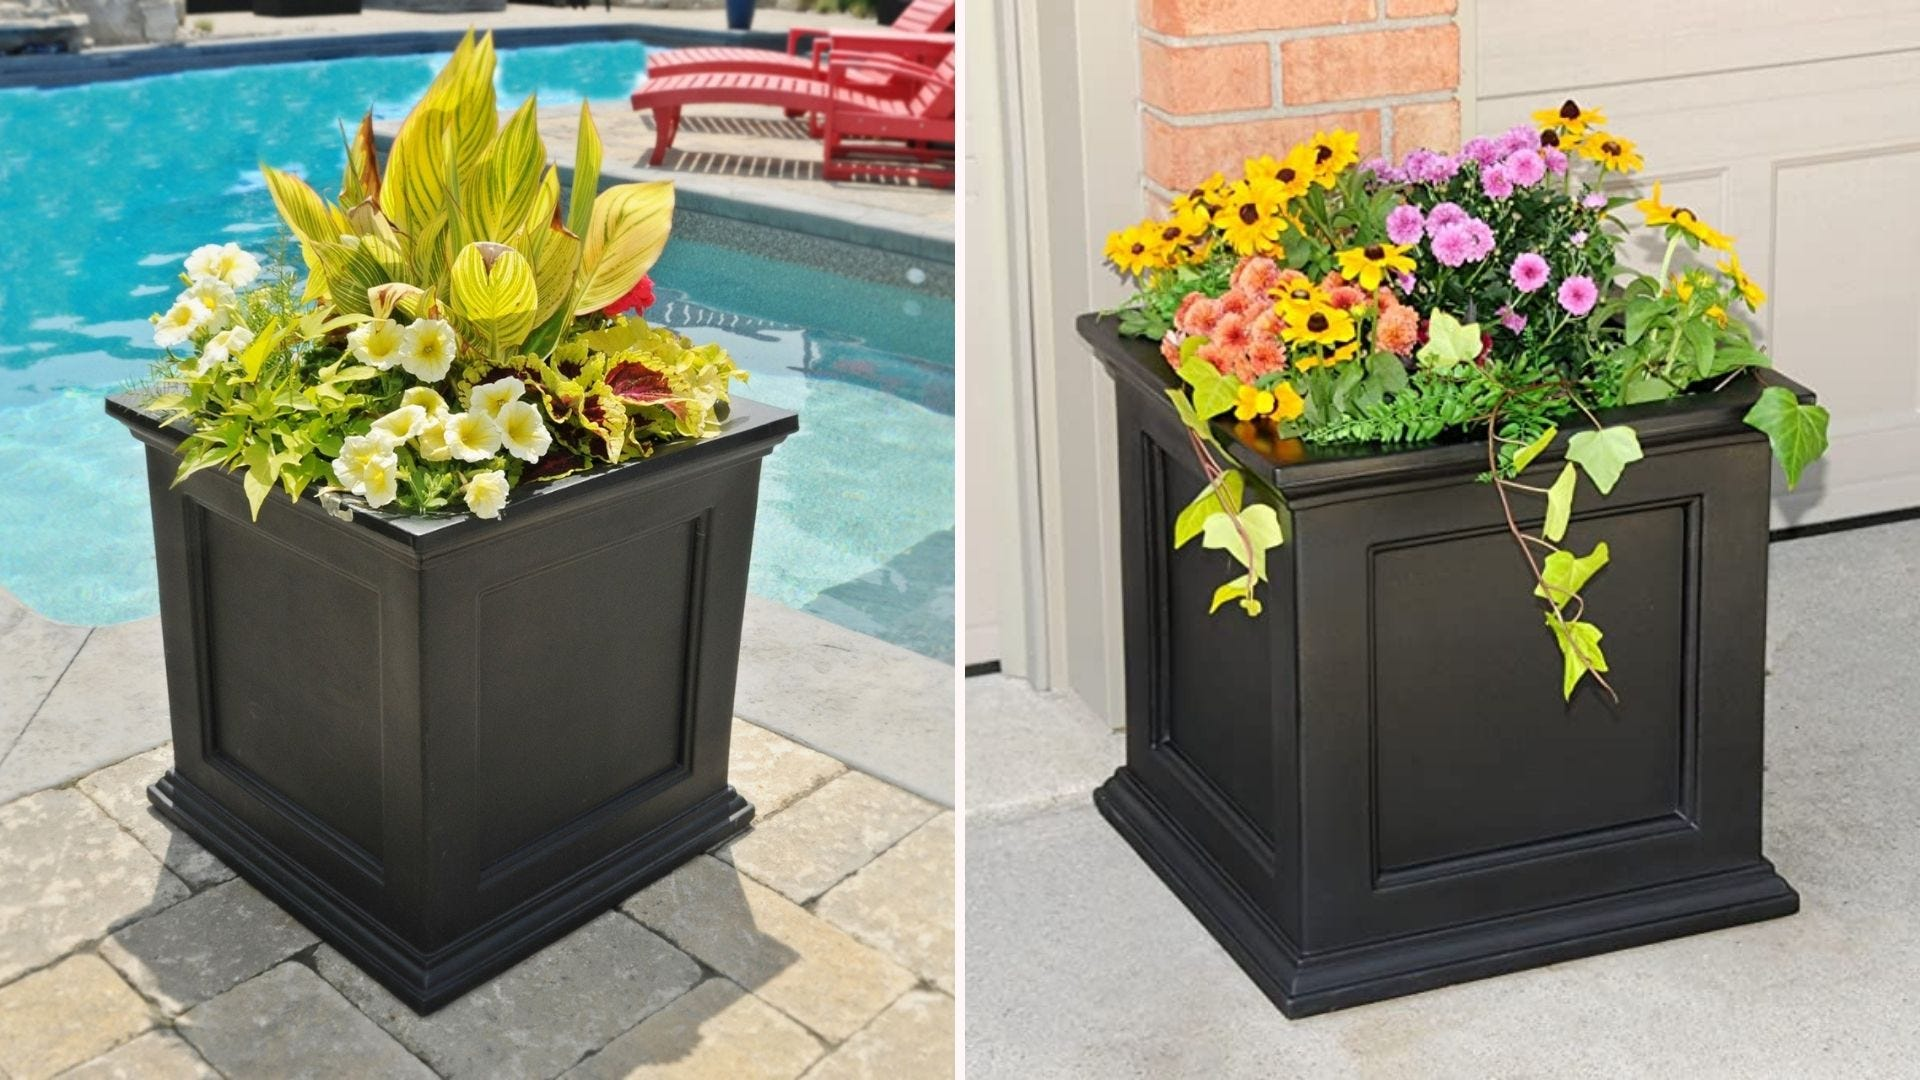 Two large black square planters, one by a pool and one by a garage.